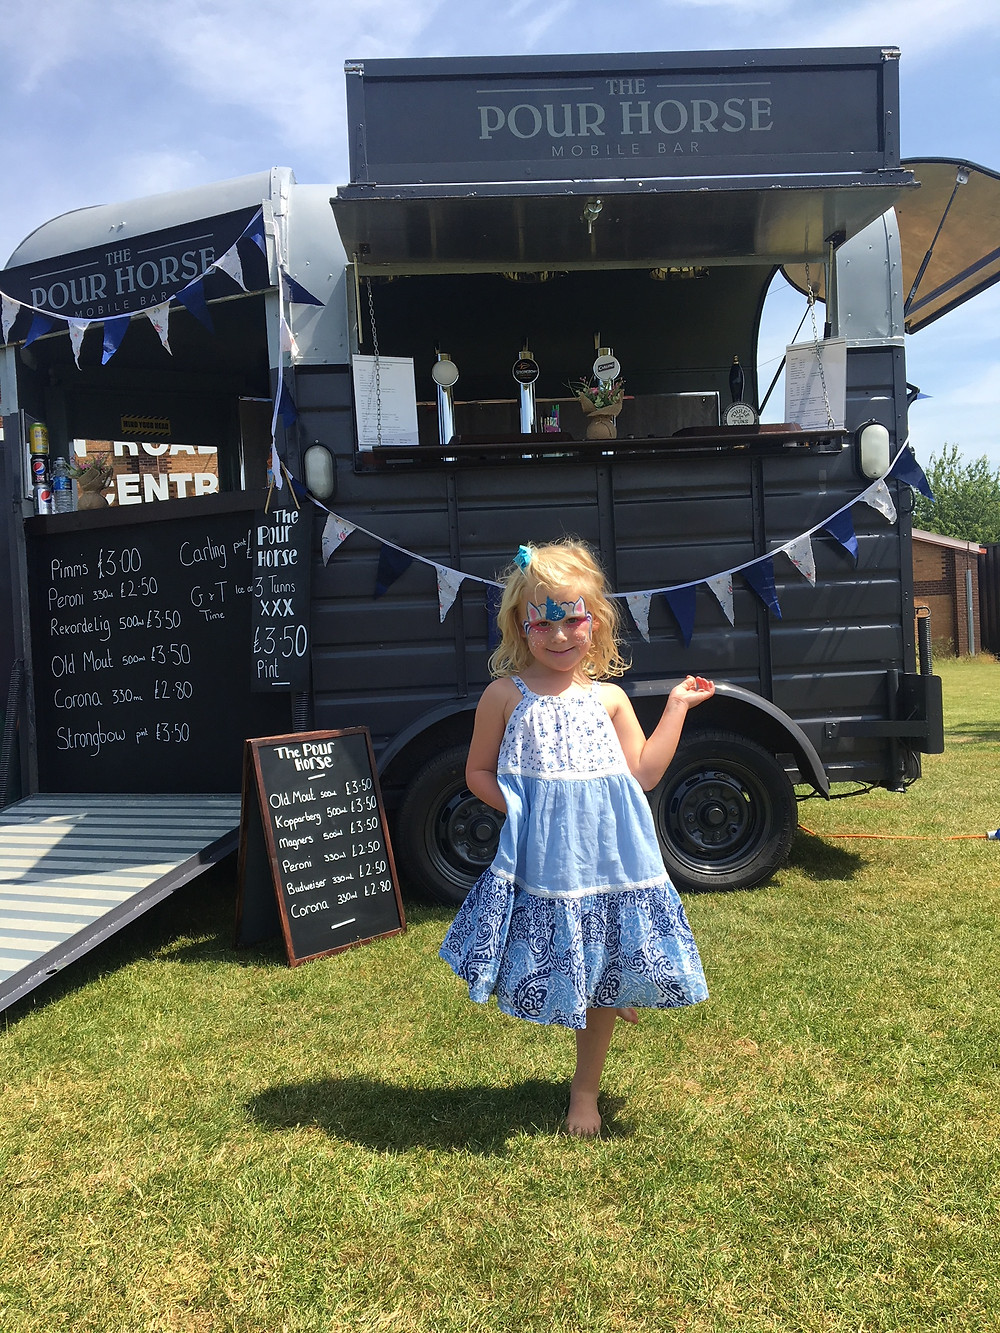 Mobile Bar in Shropshire, vintage bar in shropshire, charity fun day shrewsbury